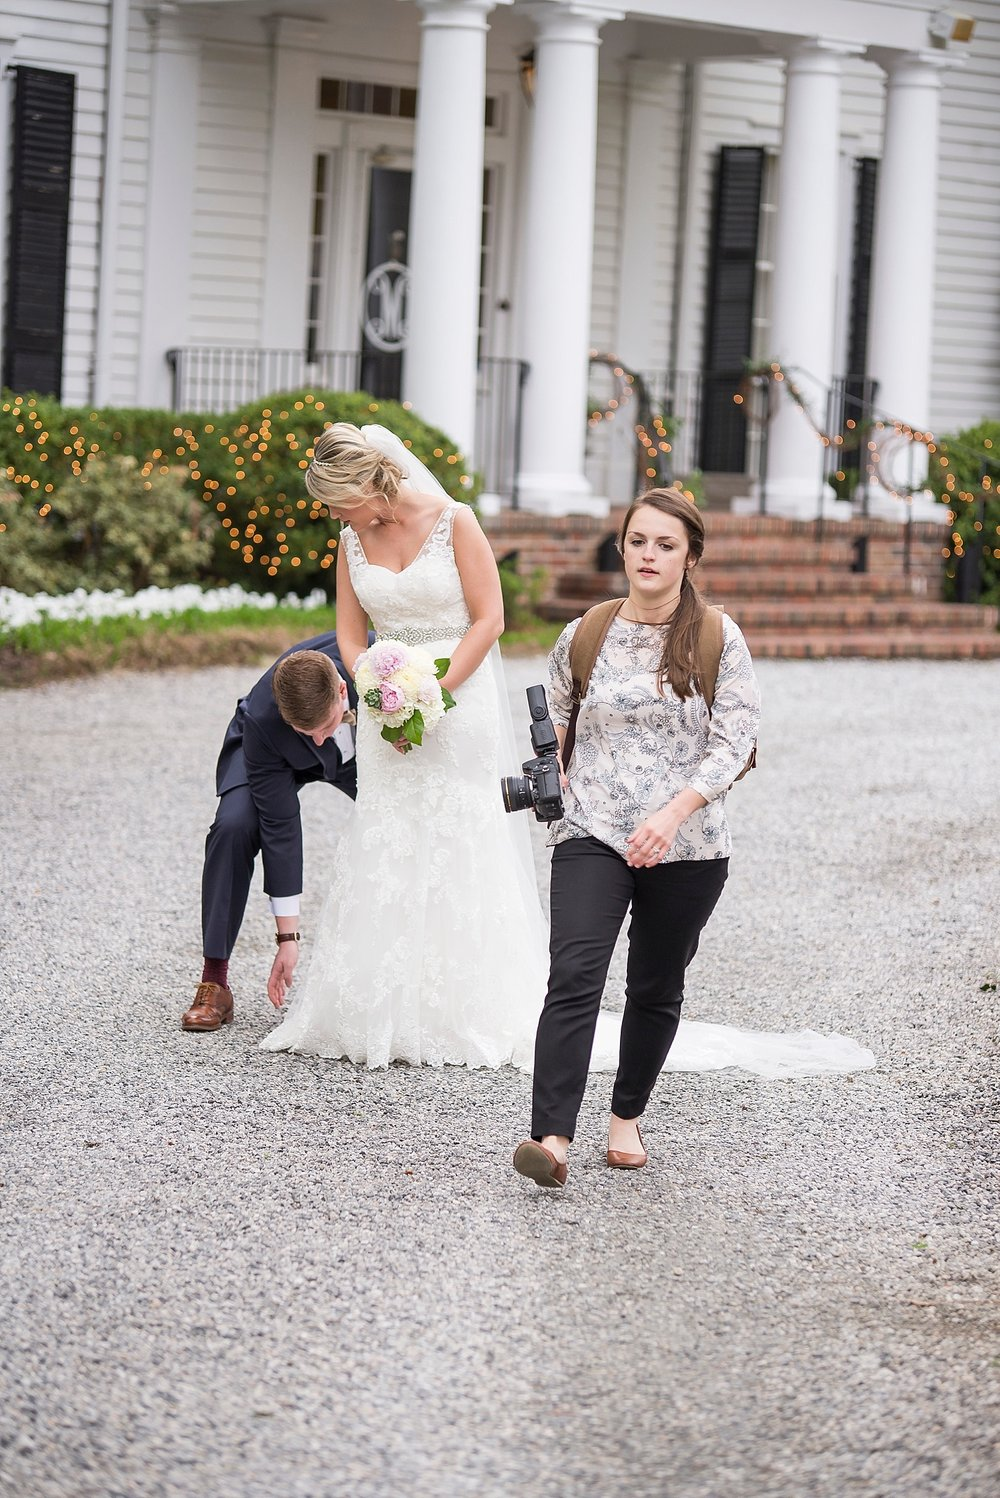 """And apparently giving up on the dress and walking away...? I promise I'm happy here! This is what I would call """"my seriously on a time crunch"""" face."""